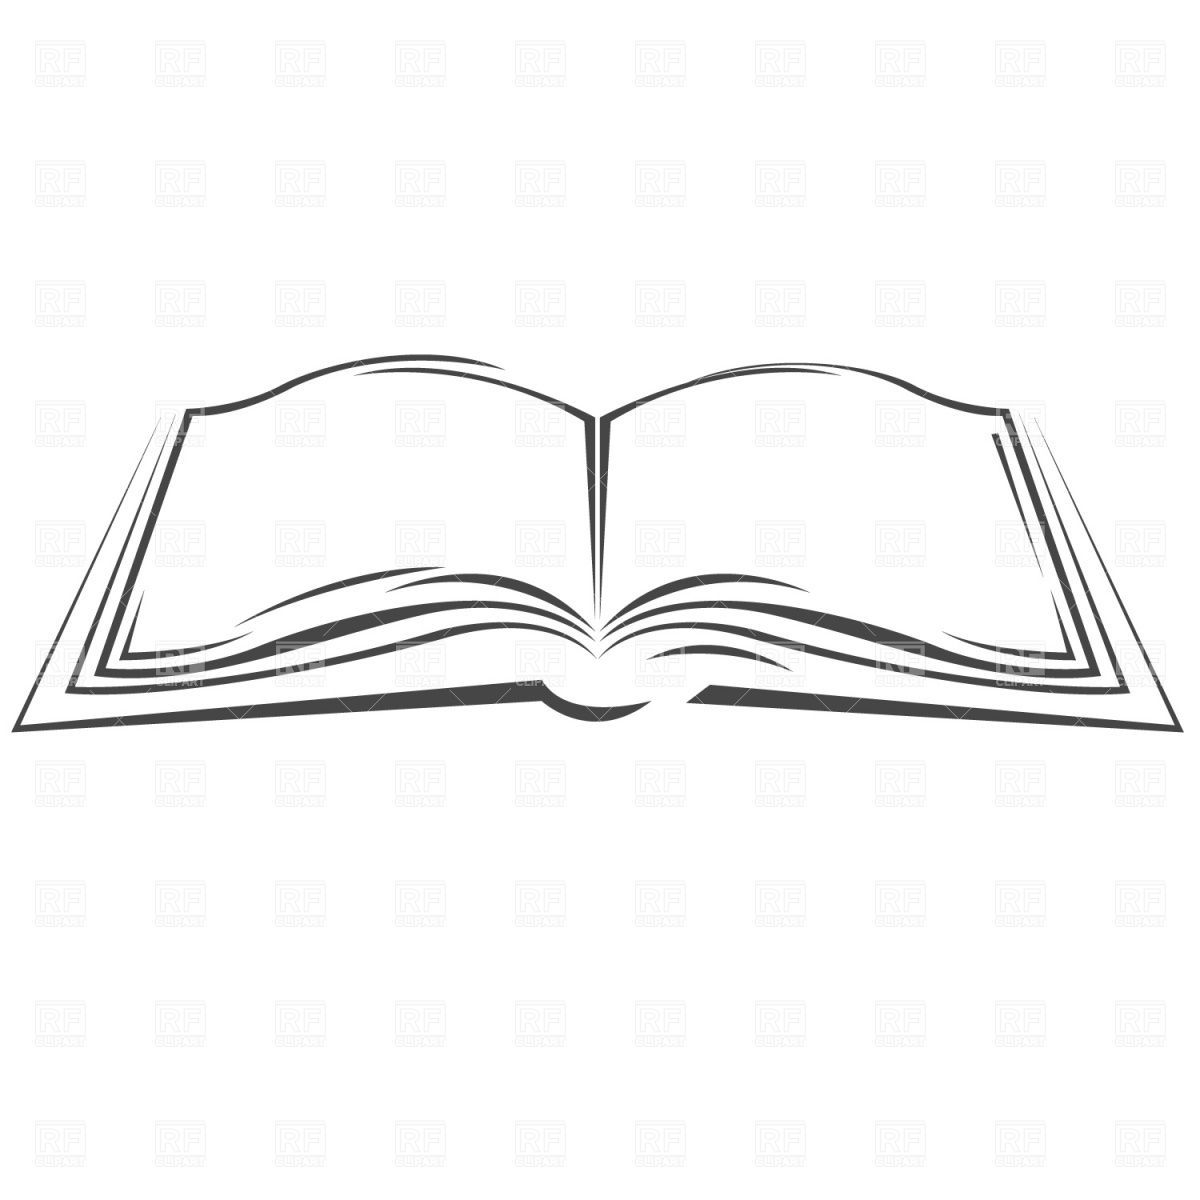 Book Images Clip Art Symbolic Open Book Objects Download